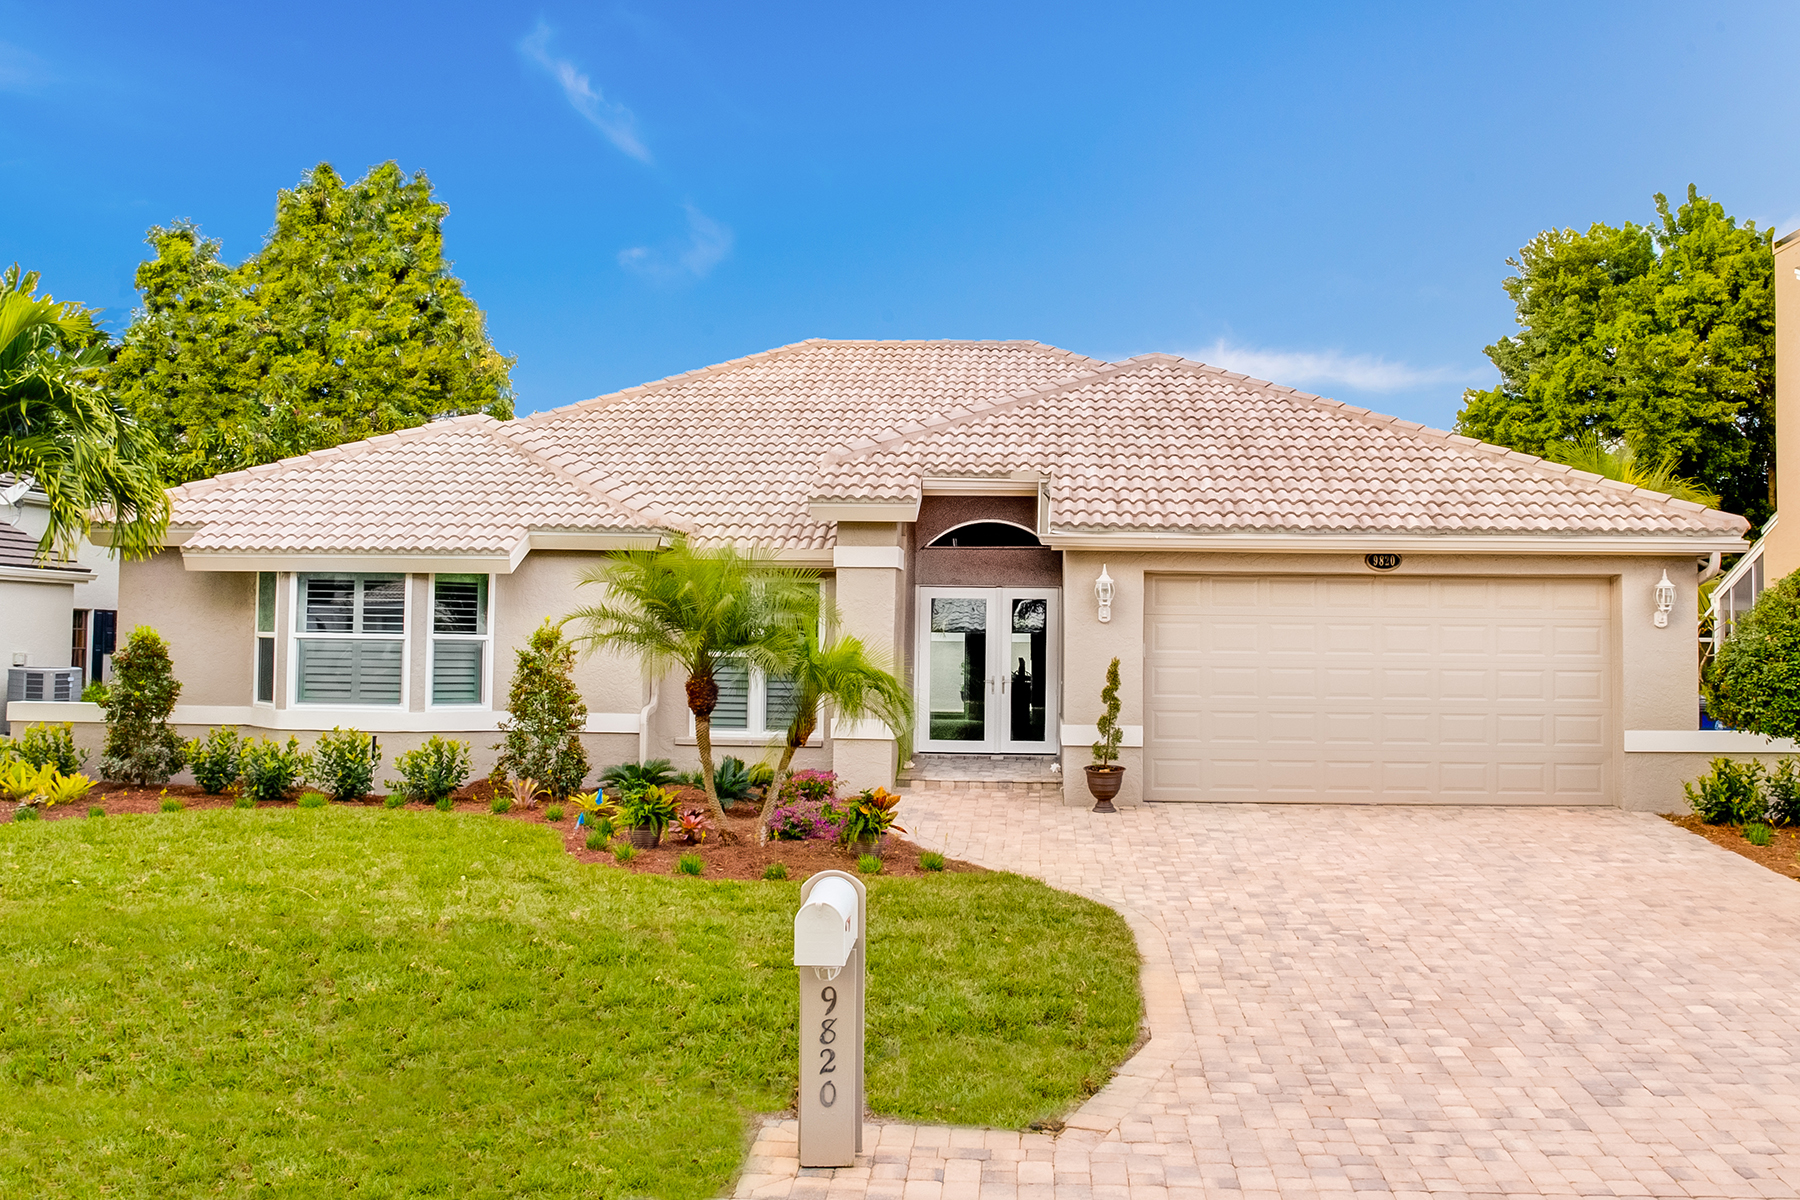 Single Family Home for Sale at FOR MYES 9820 Capstan Ct Fort Myers, Florida, 33919 United States